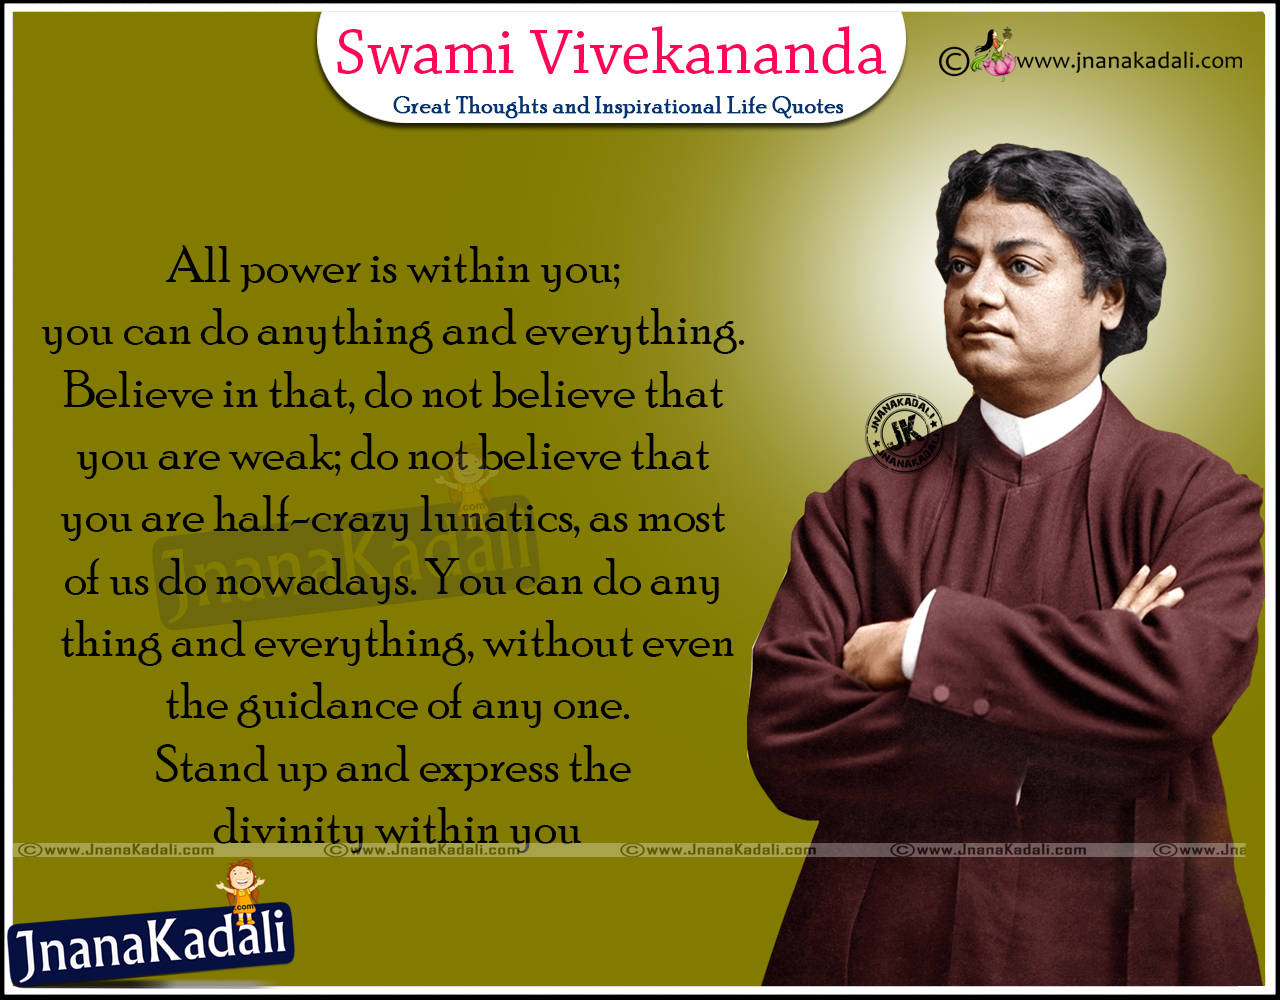 swami vivekananda english quotes wallpapers jnana kadali